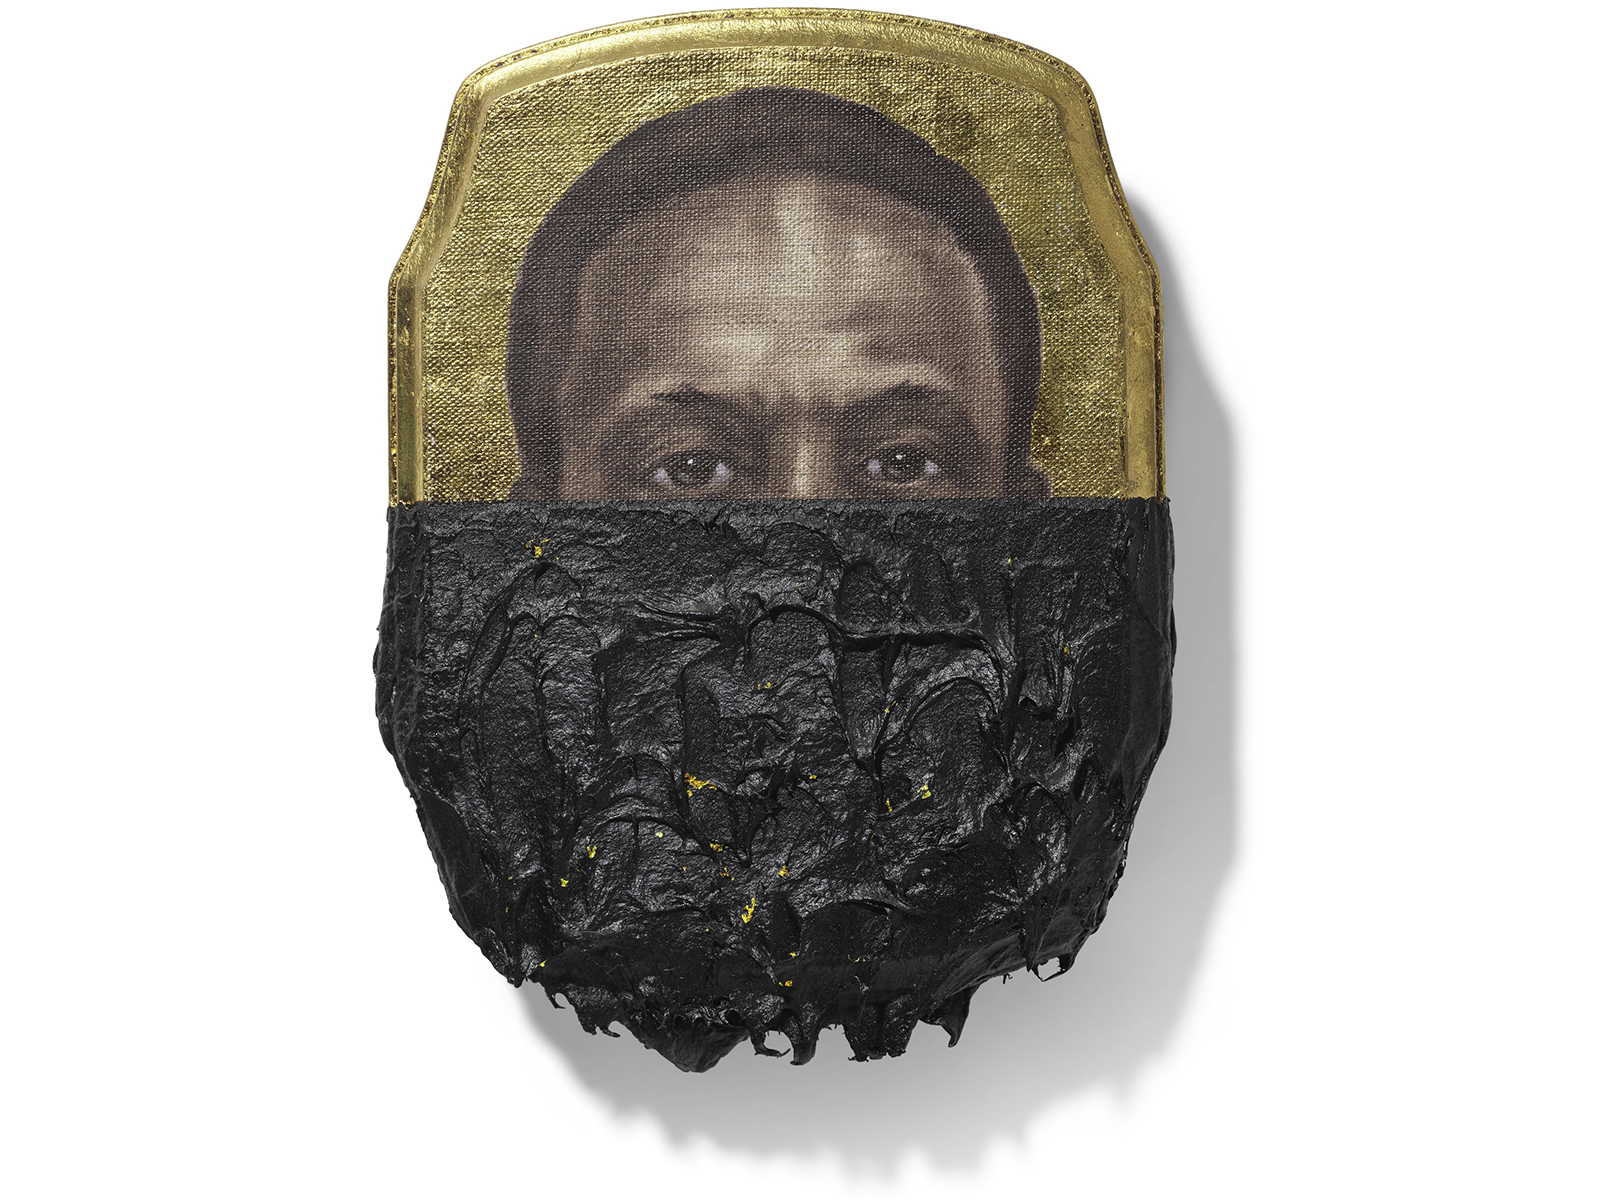 A portrait of an African American man's face with the lower half obscured by tar